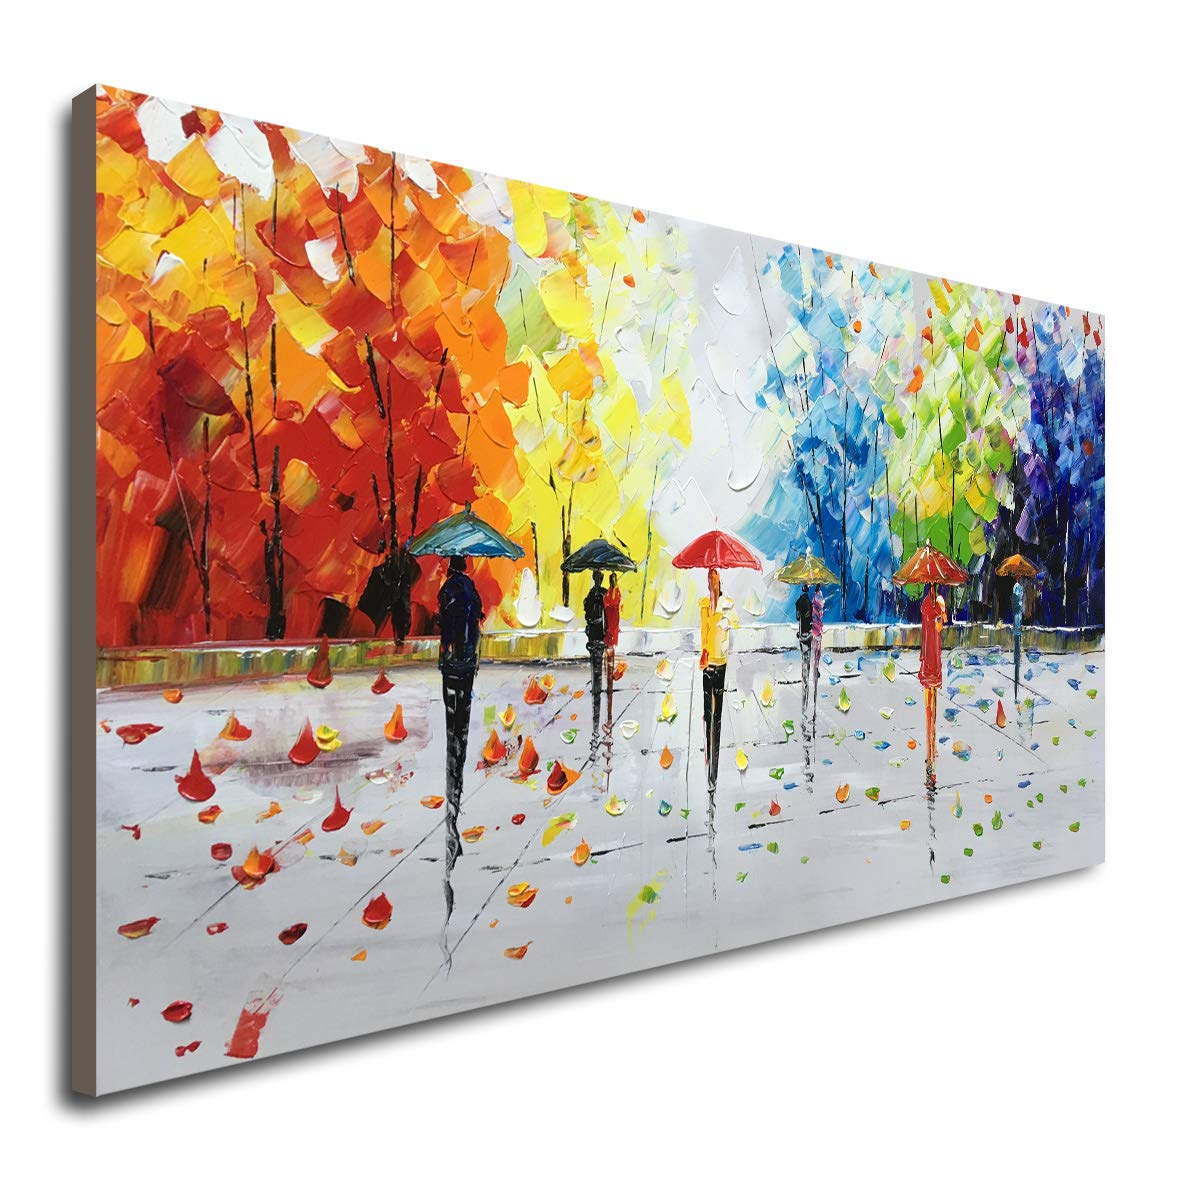 100 Hand Painted Abstract Landscape Wall Art People Walking Modern Oil Painting